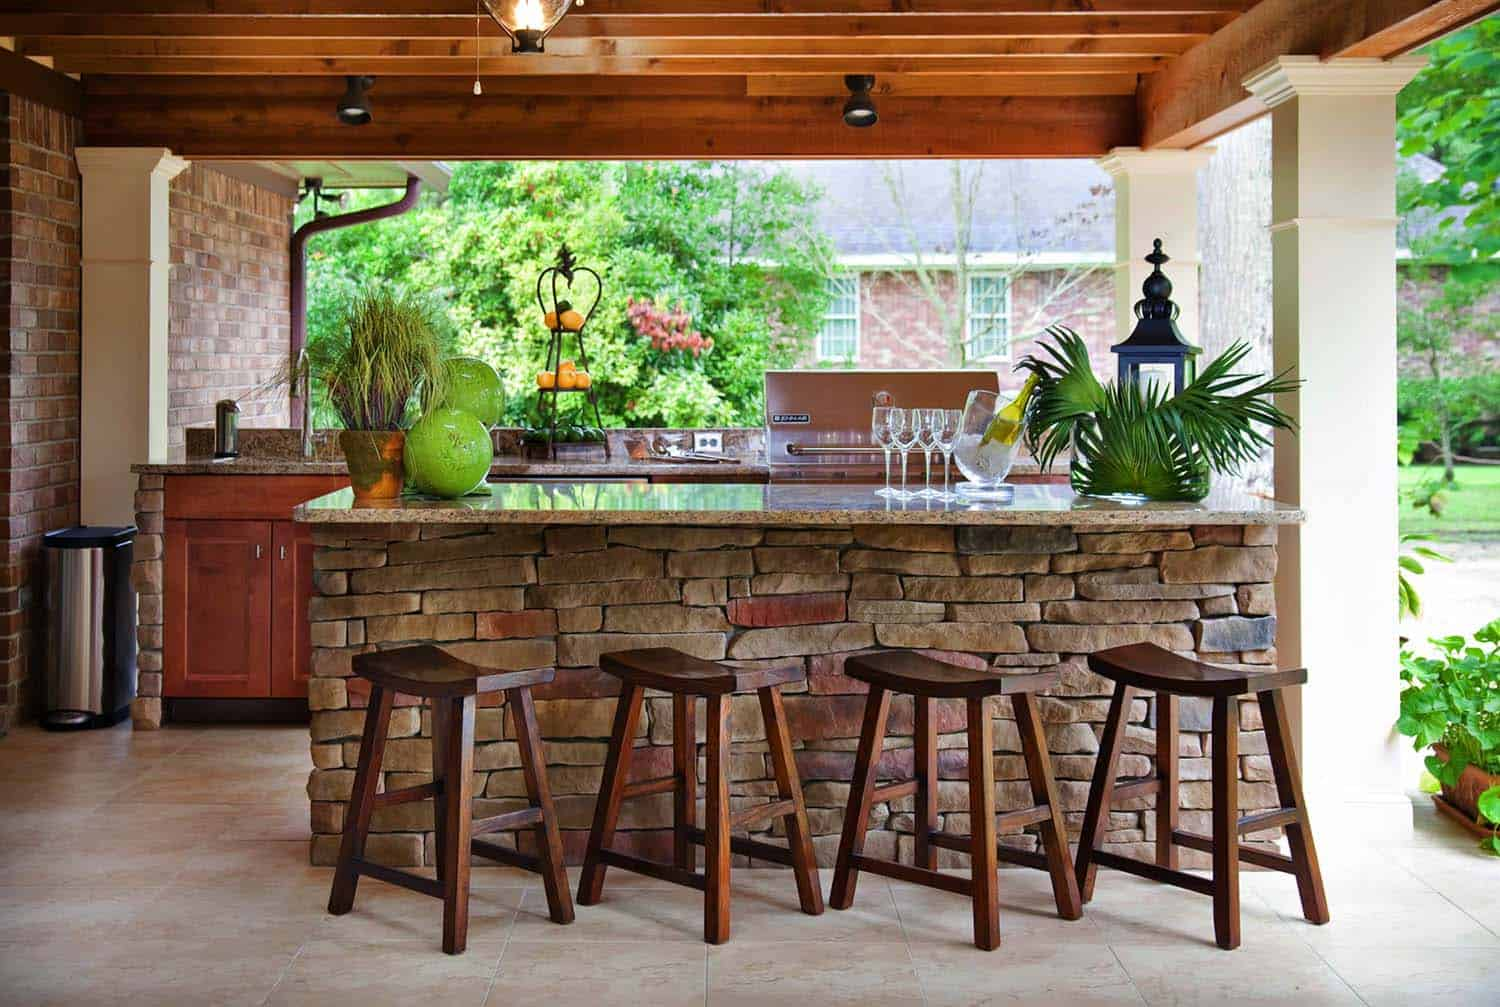 Spectacular Outdoor Kitchens With Bars